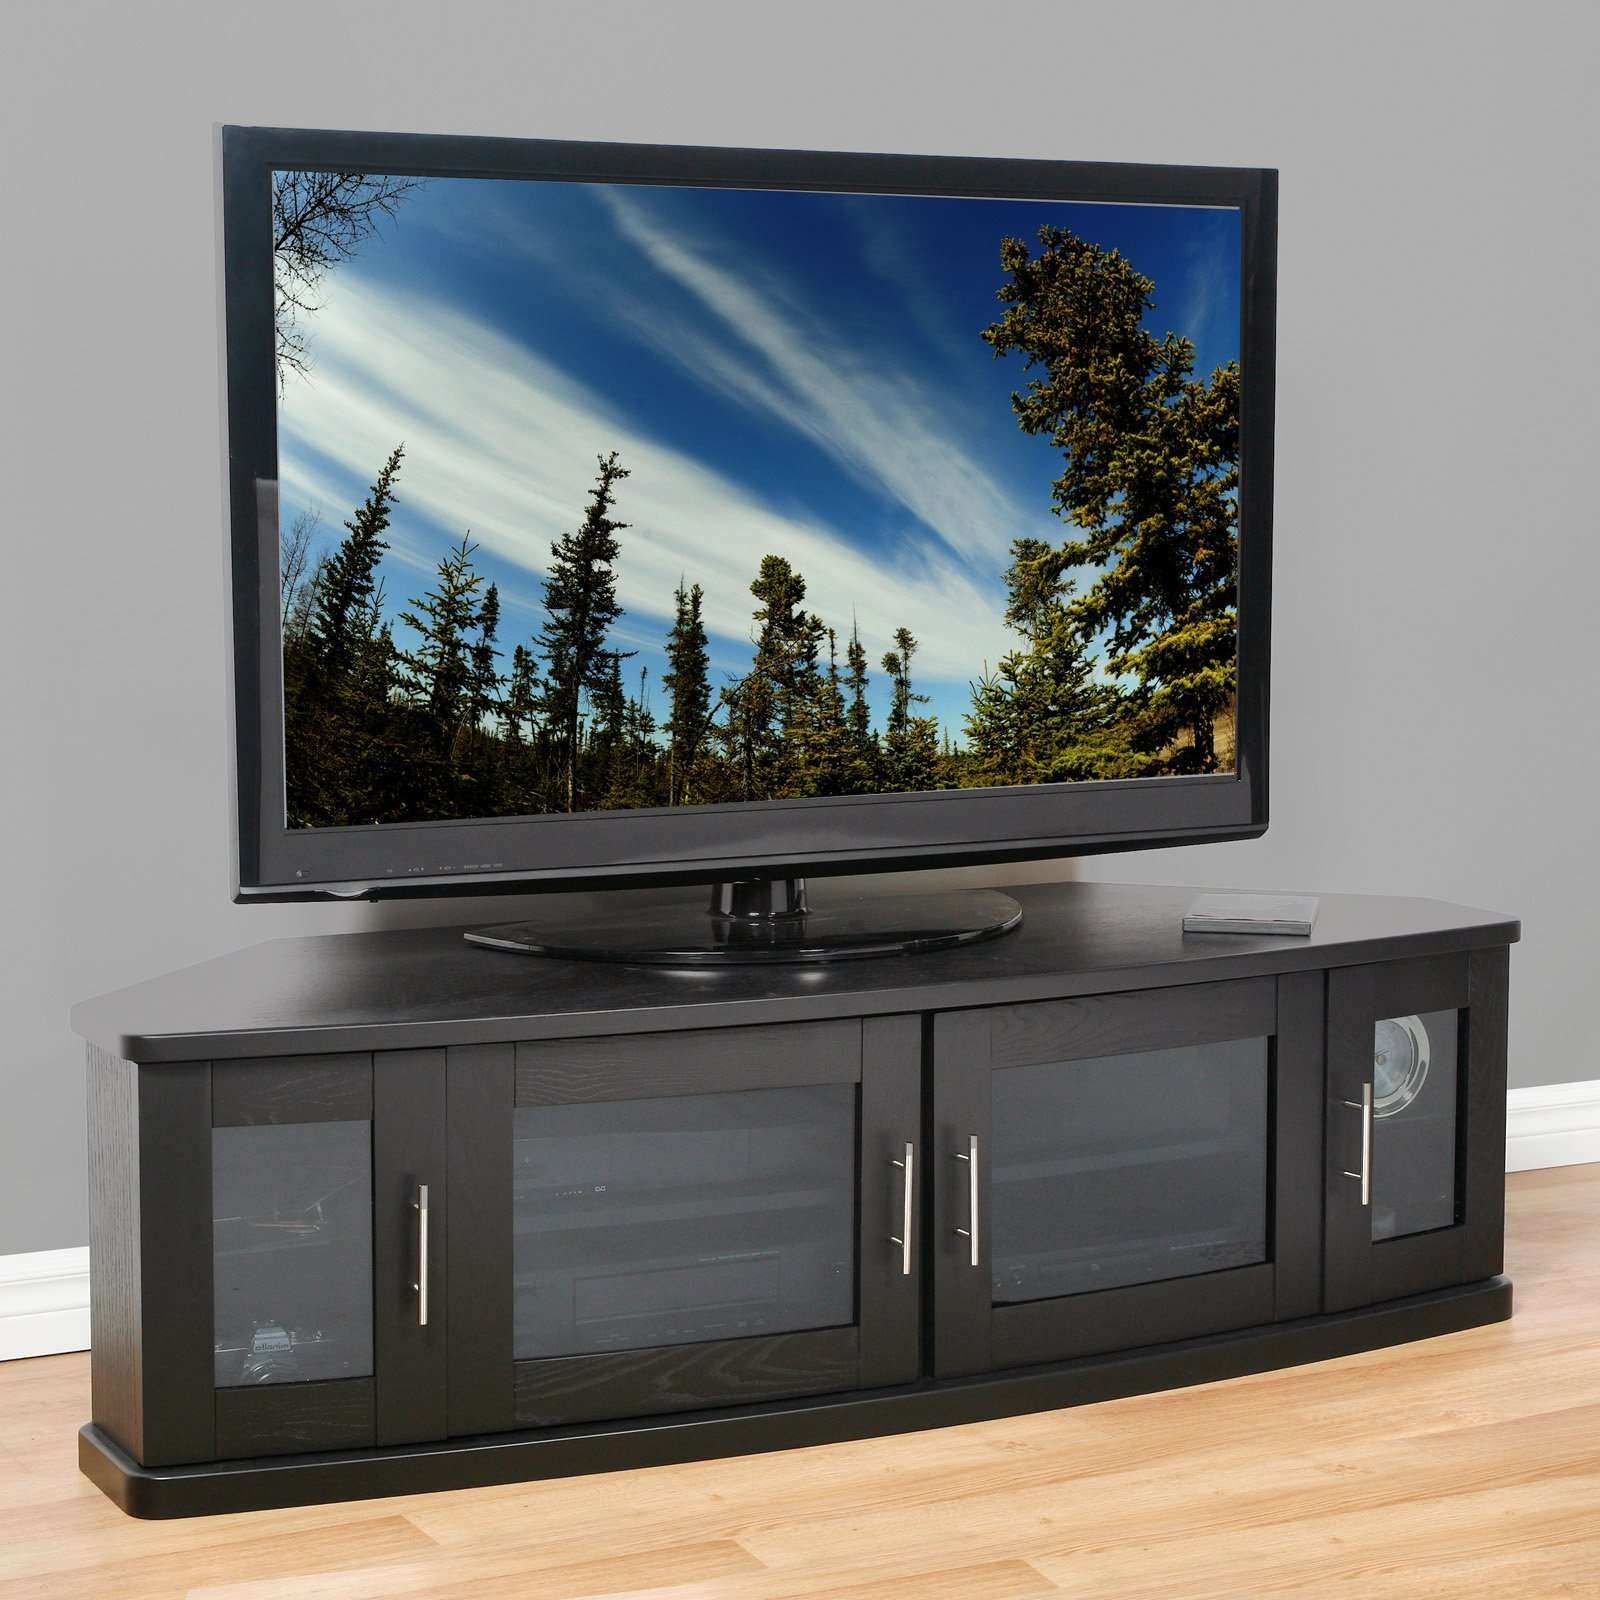 Plateau Newport 62 Inch Corner Tv Stand In Black – Walmart In Black Corner Tv Cabinets With Glass Doors (View 11 of 20)